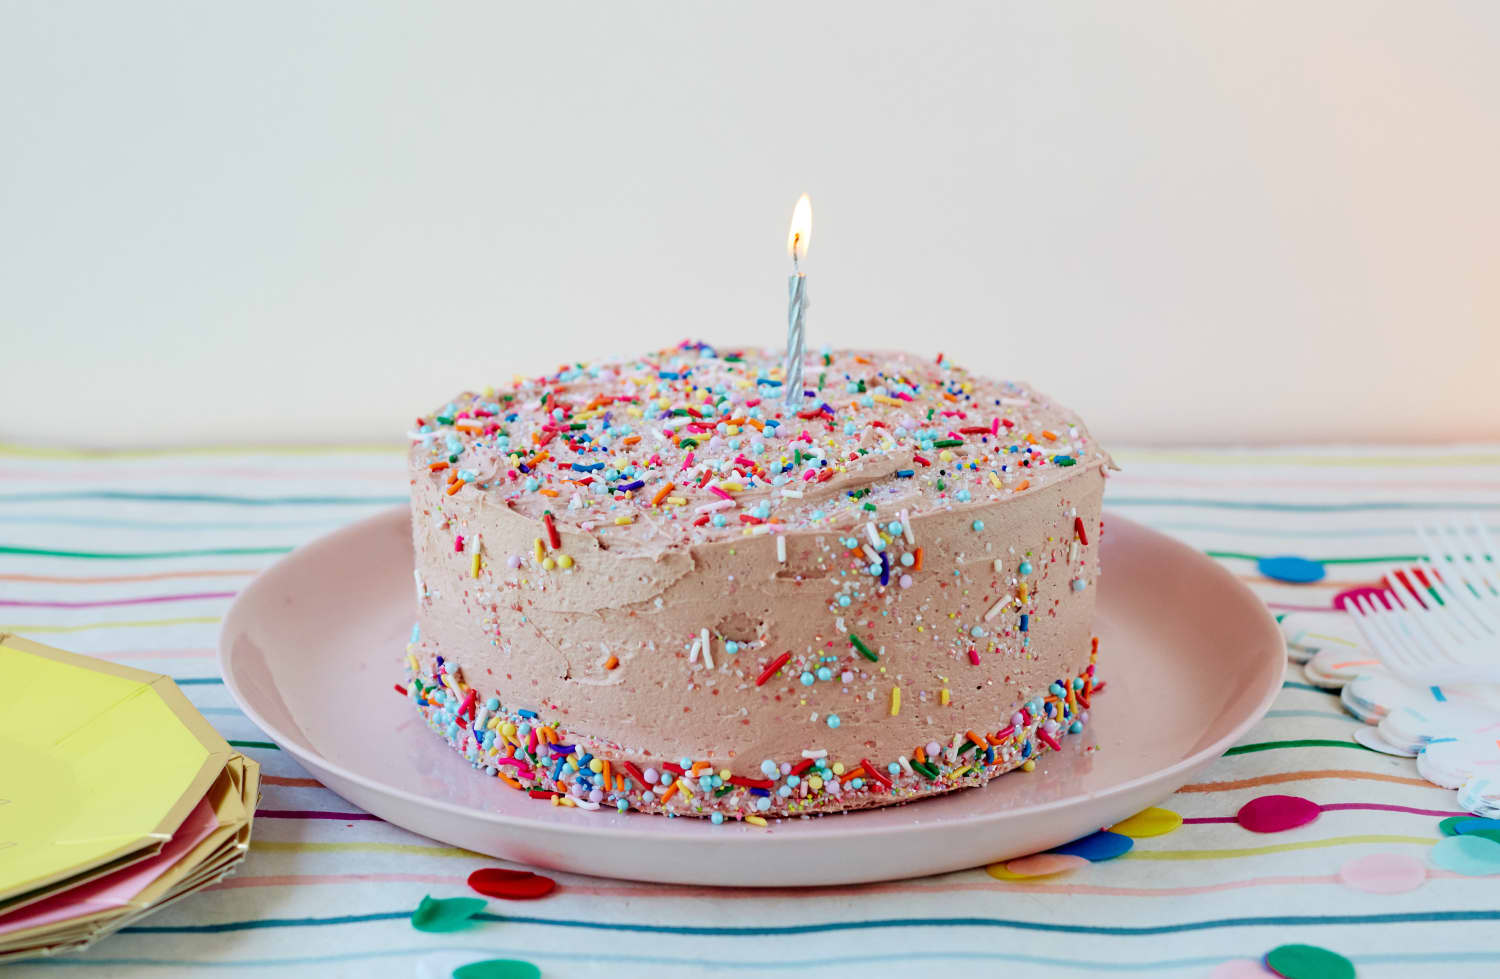 Every Year I Bake My Own Birthday Cake. Here's Why